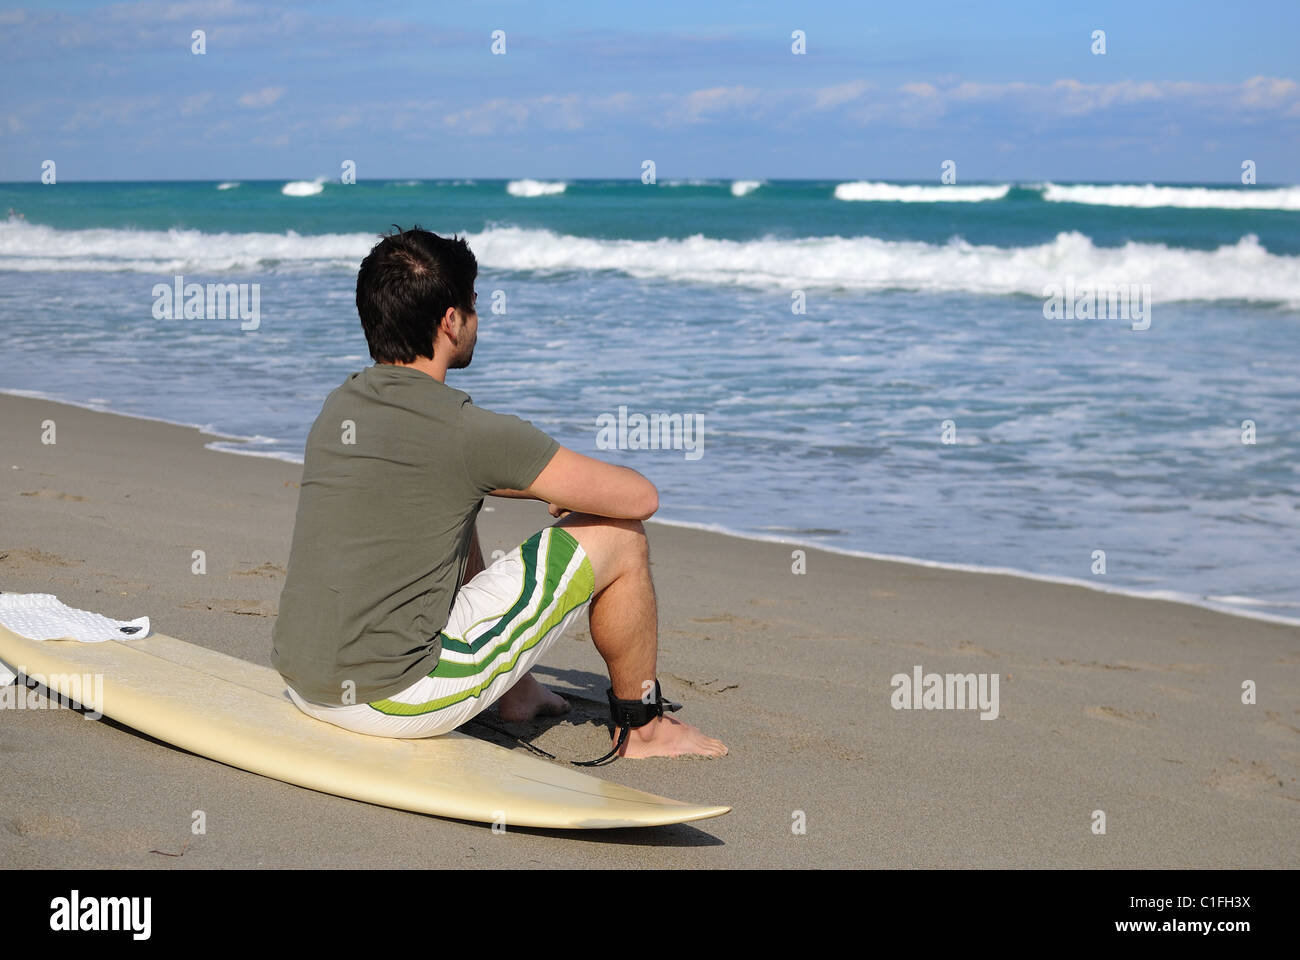 Surfer on the beach with his board. Stock Photo